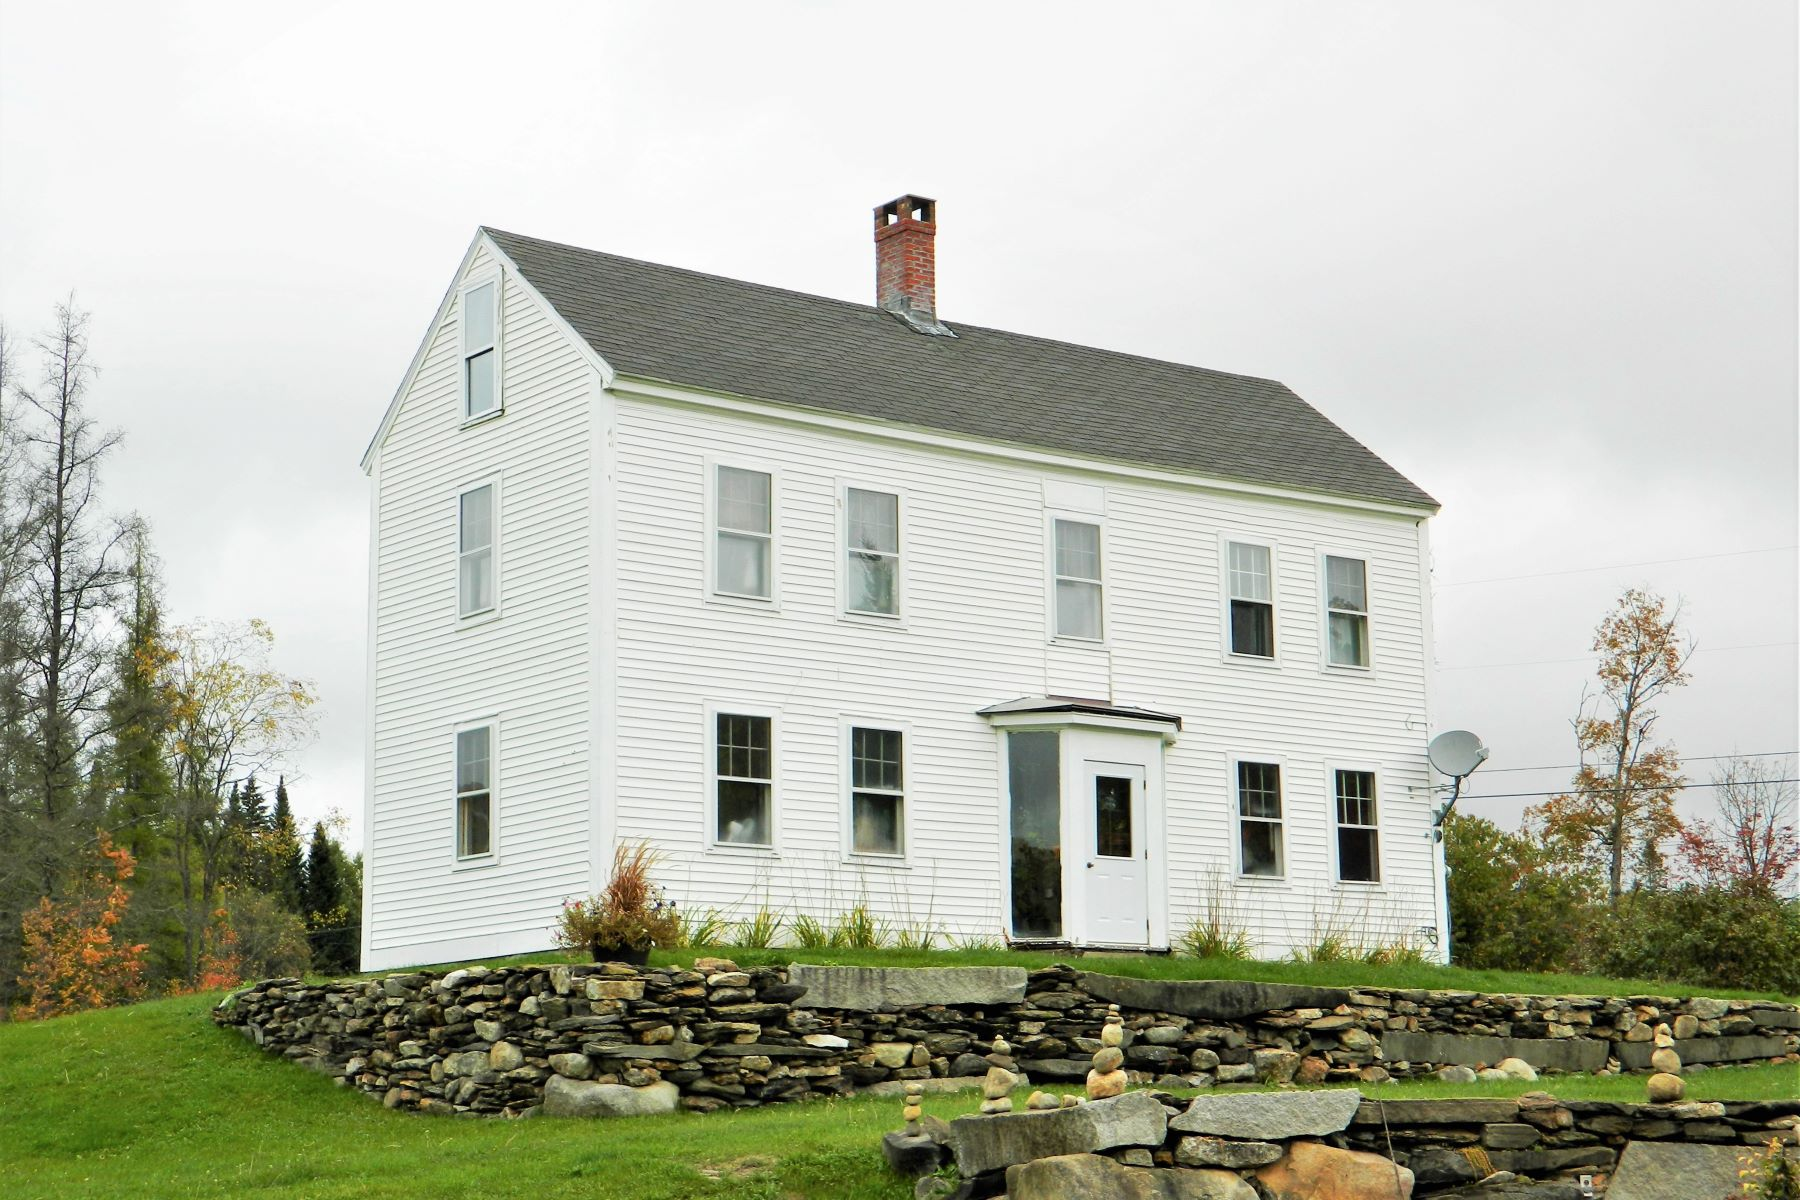 Single Family Homes for Sale at Three Bedroom Colonial in Vershire 876 Mciver Rd Vershire, Vermont 05079 United States